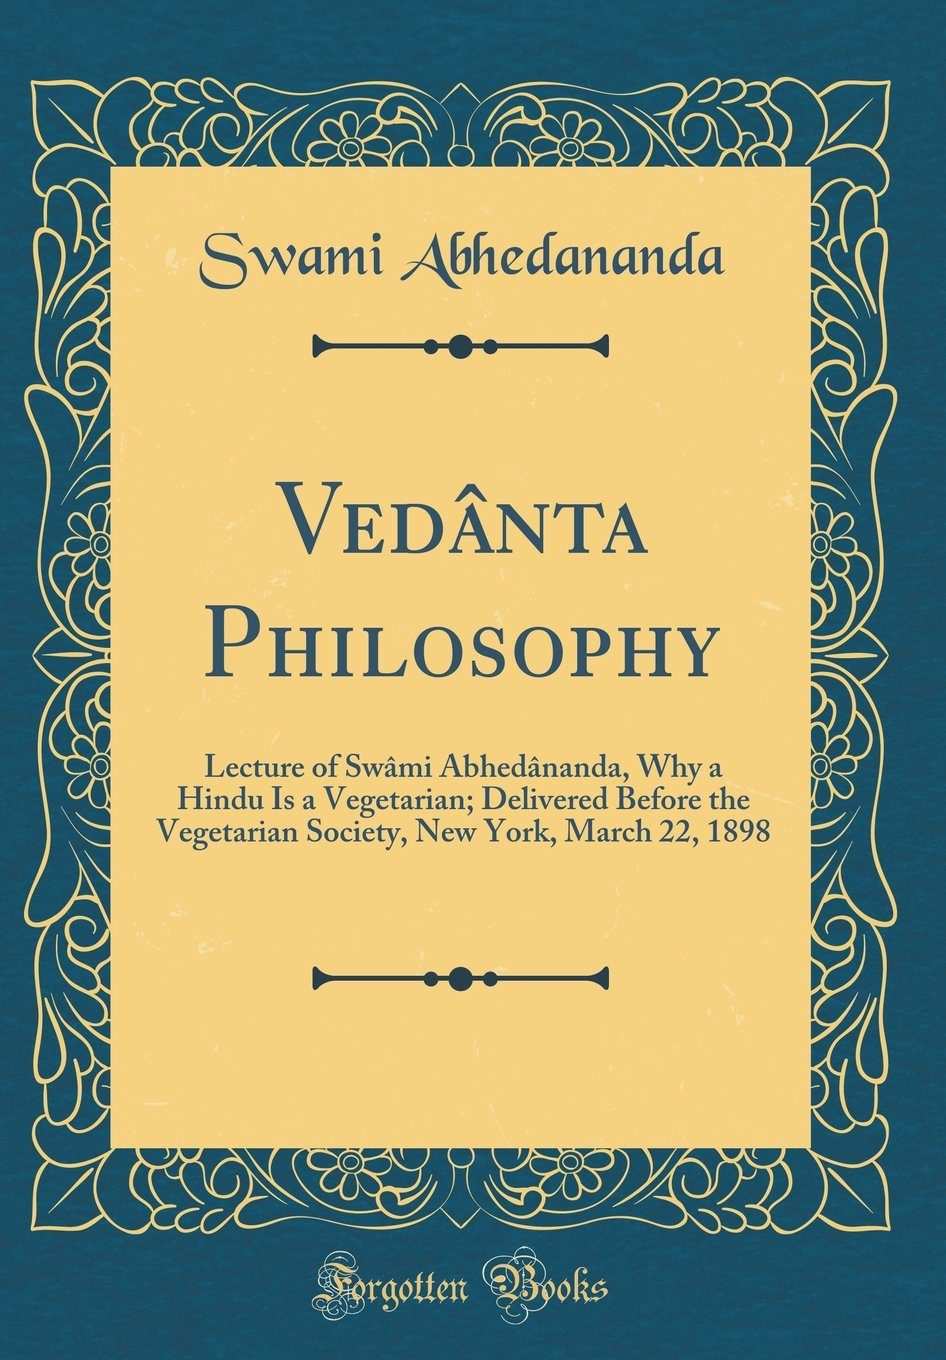 Vedânta Philosophy: Lecture of Swâmi Abhedânanda, Why a Hindu Is a Vegetarian; Delivered Before the Vegetarian Society, New York, March 22, 1898 (Classic Reprint) ePub fb2 ebook